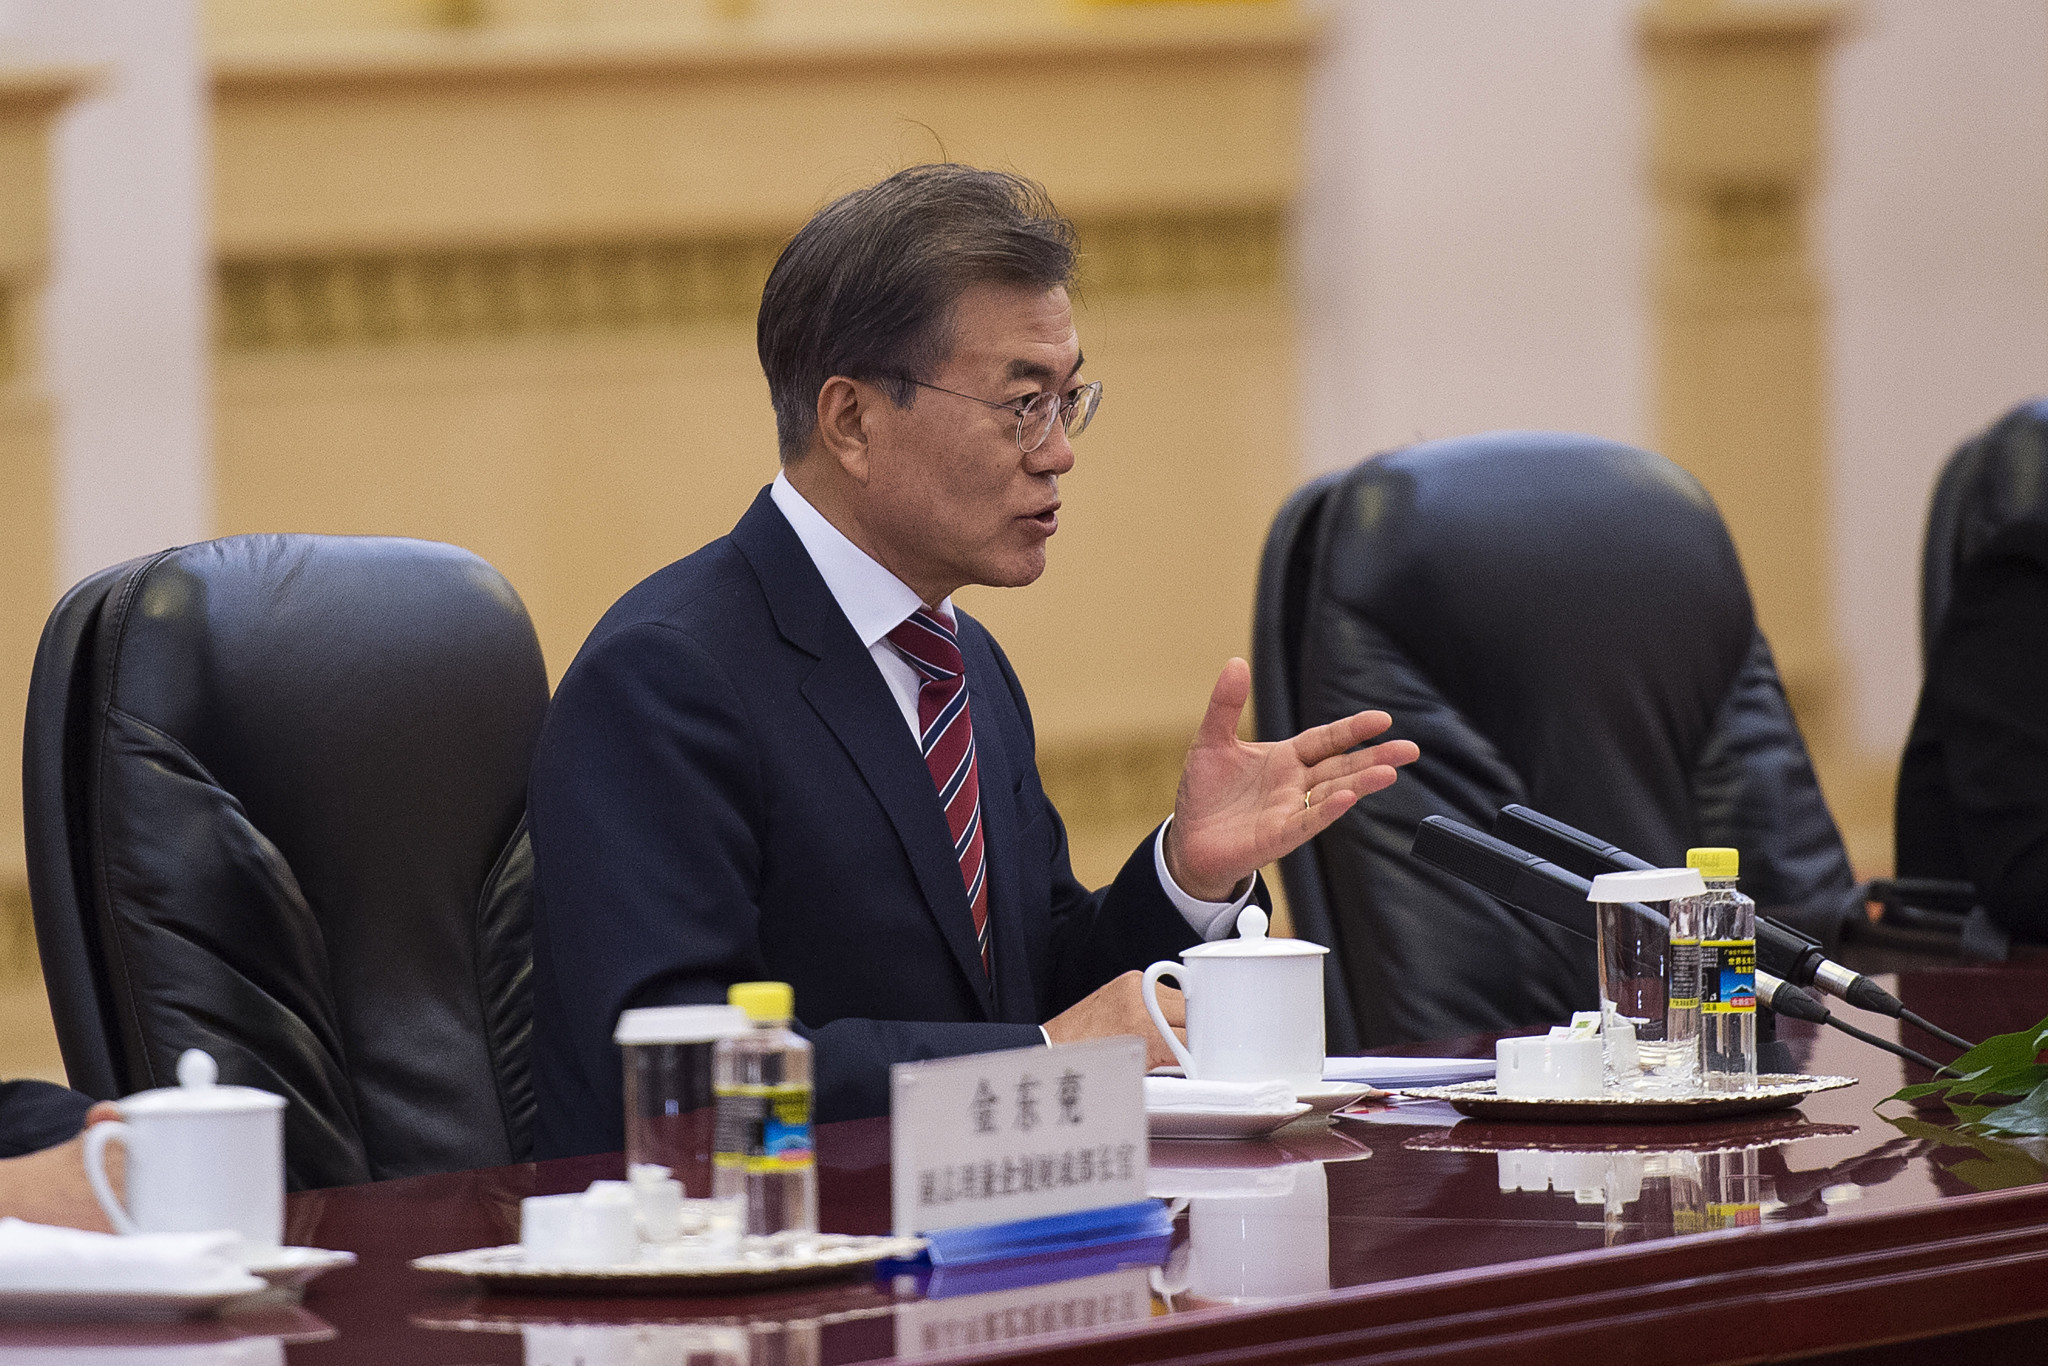 South Korean President Moon Jae-in has also vowed to cooperate with North Korea before Pyeongchang 2018 ©Getty Images